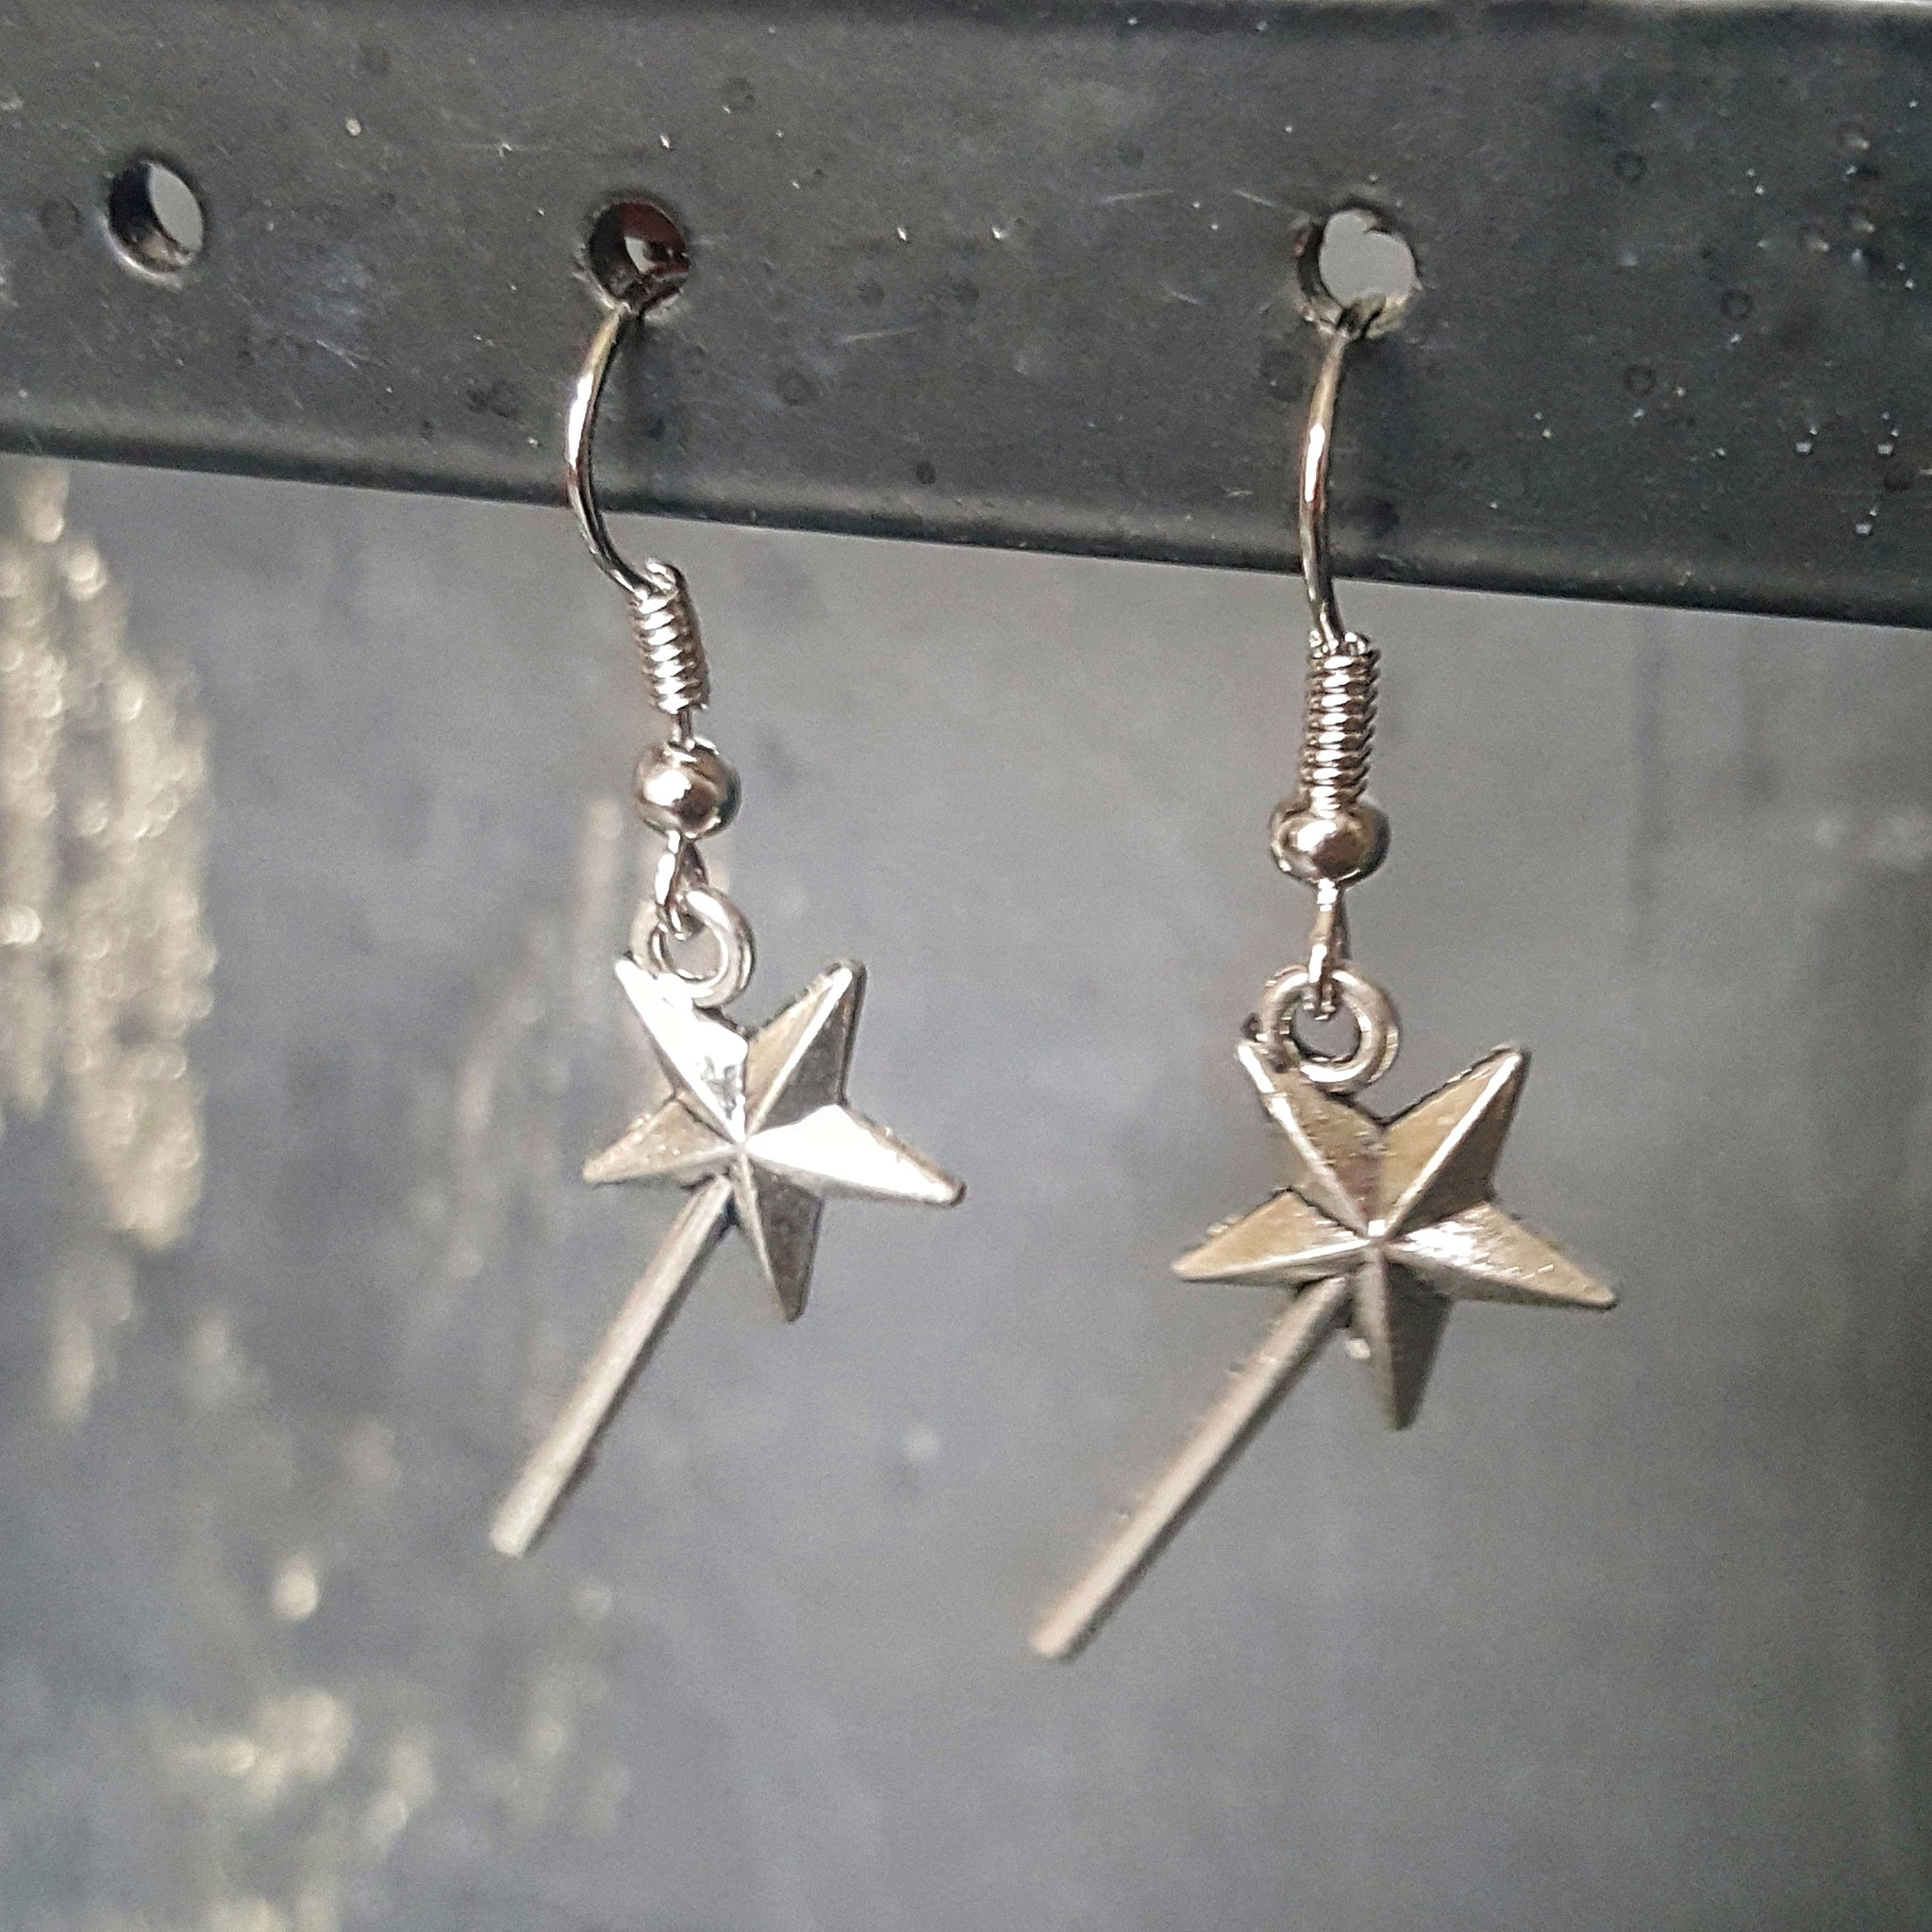 Magic Wand Silver Earrings Gifts for Dreamers - DRAVYNMOOR